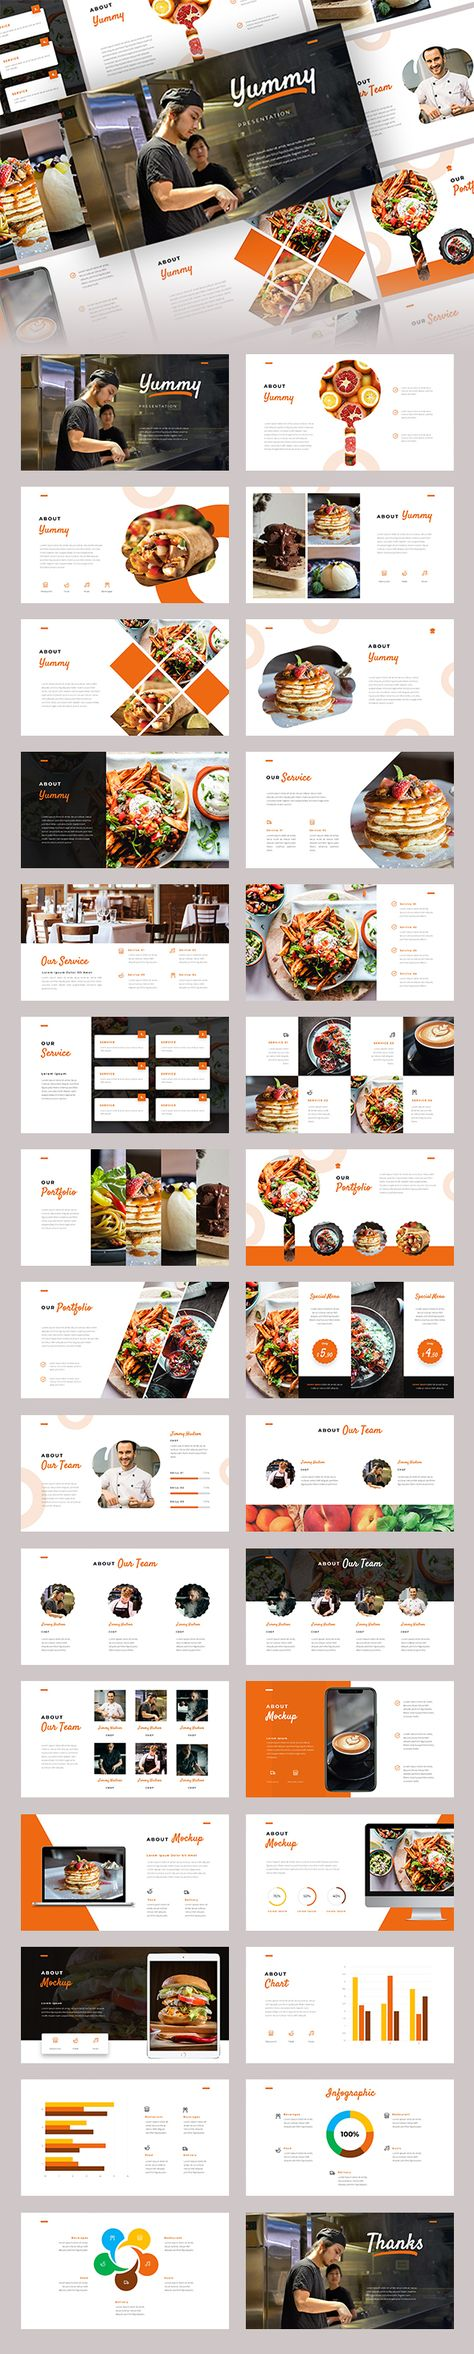 Yummy - Food Google Slide Template